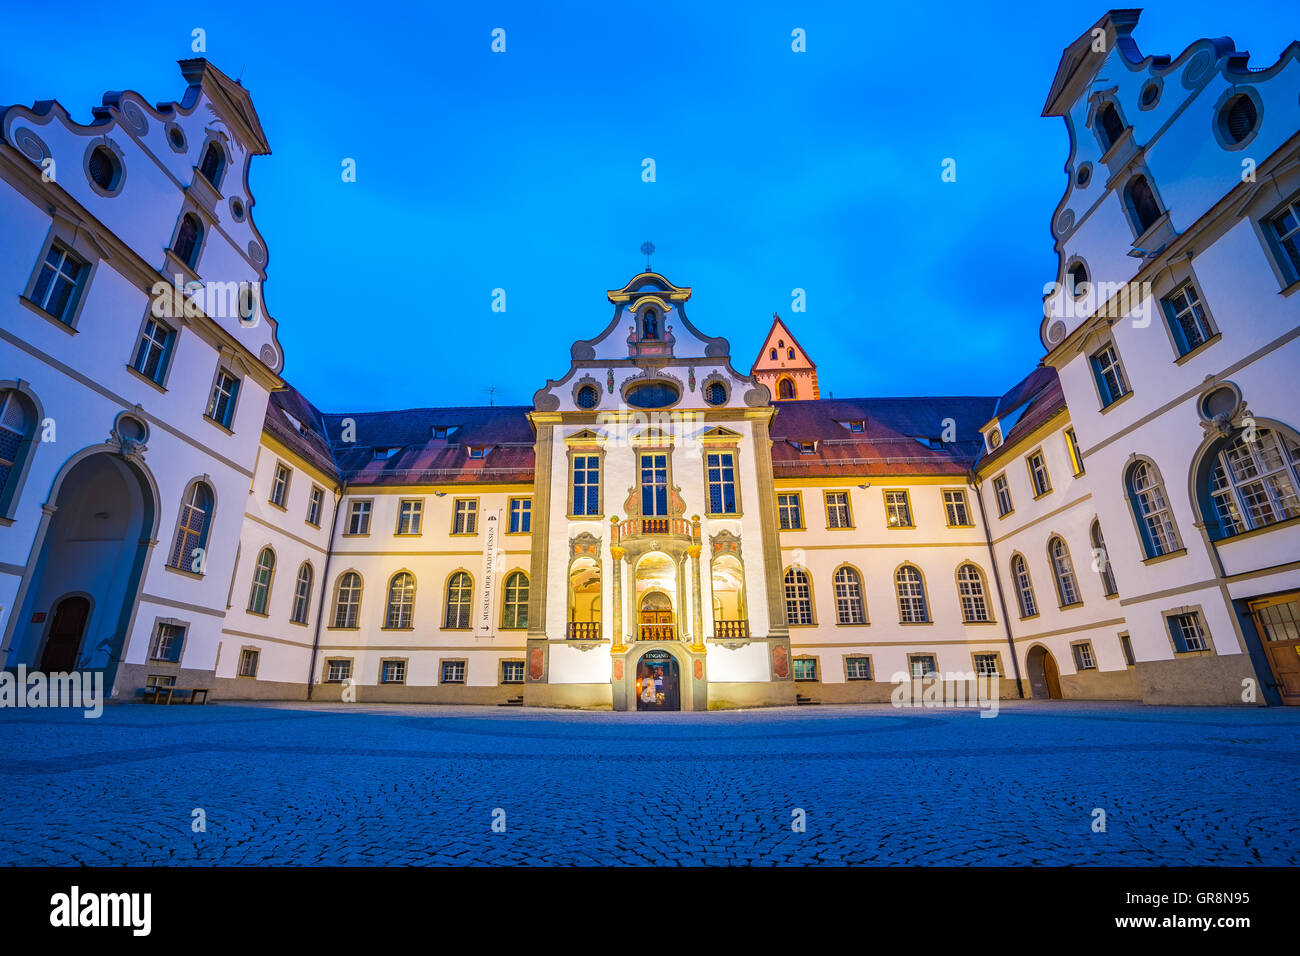 Fussen town in Bavaria, Germany. - Stock Image